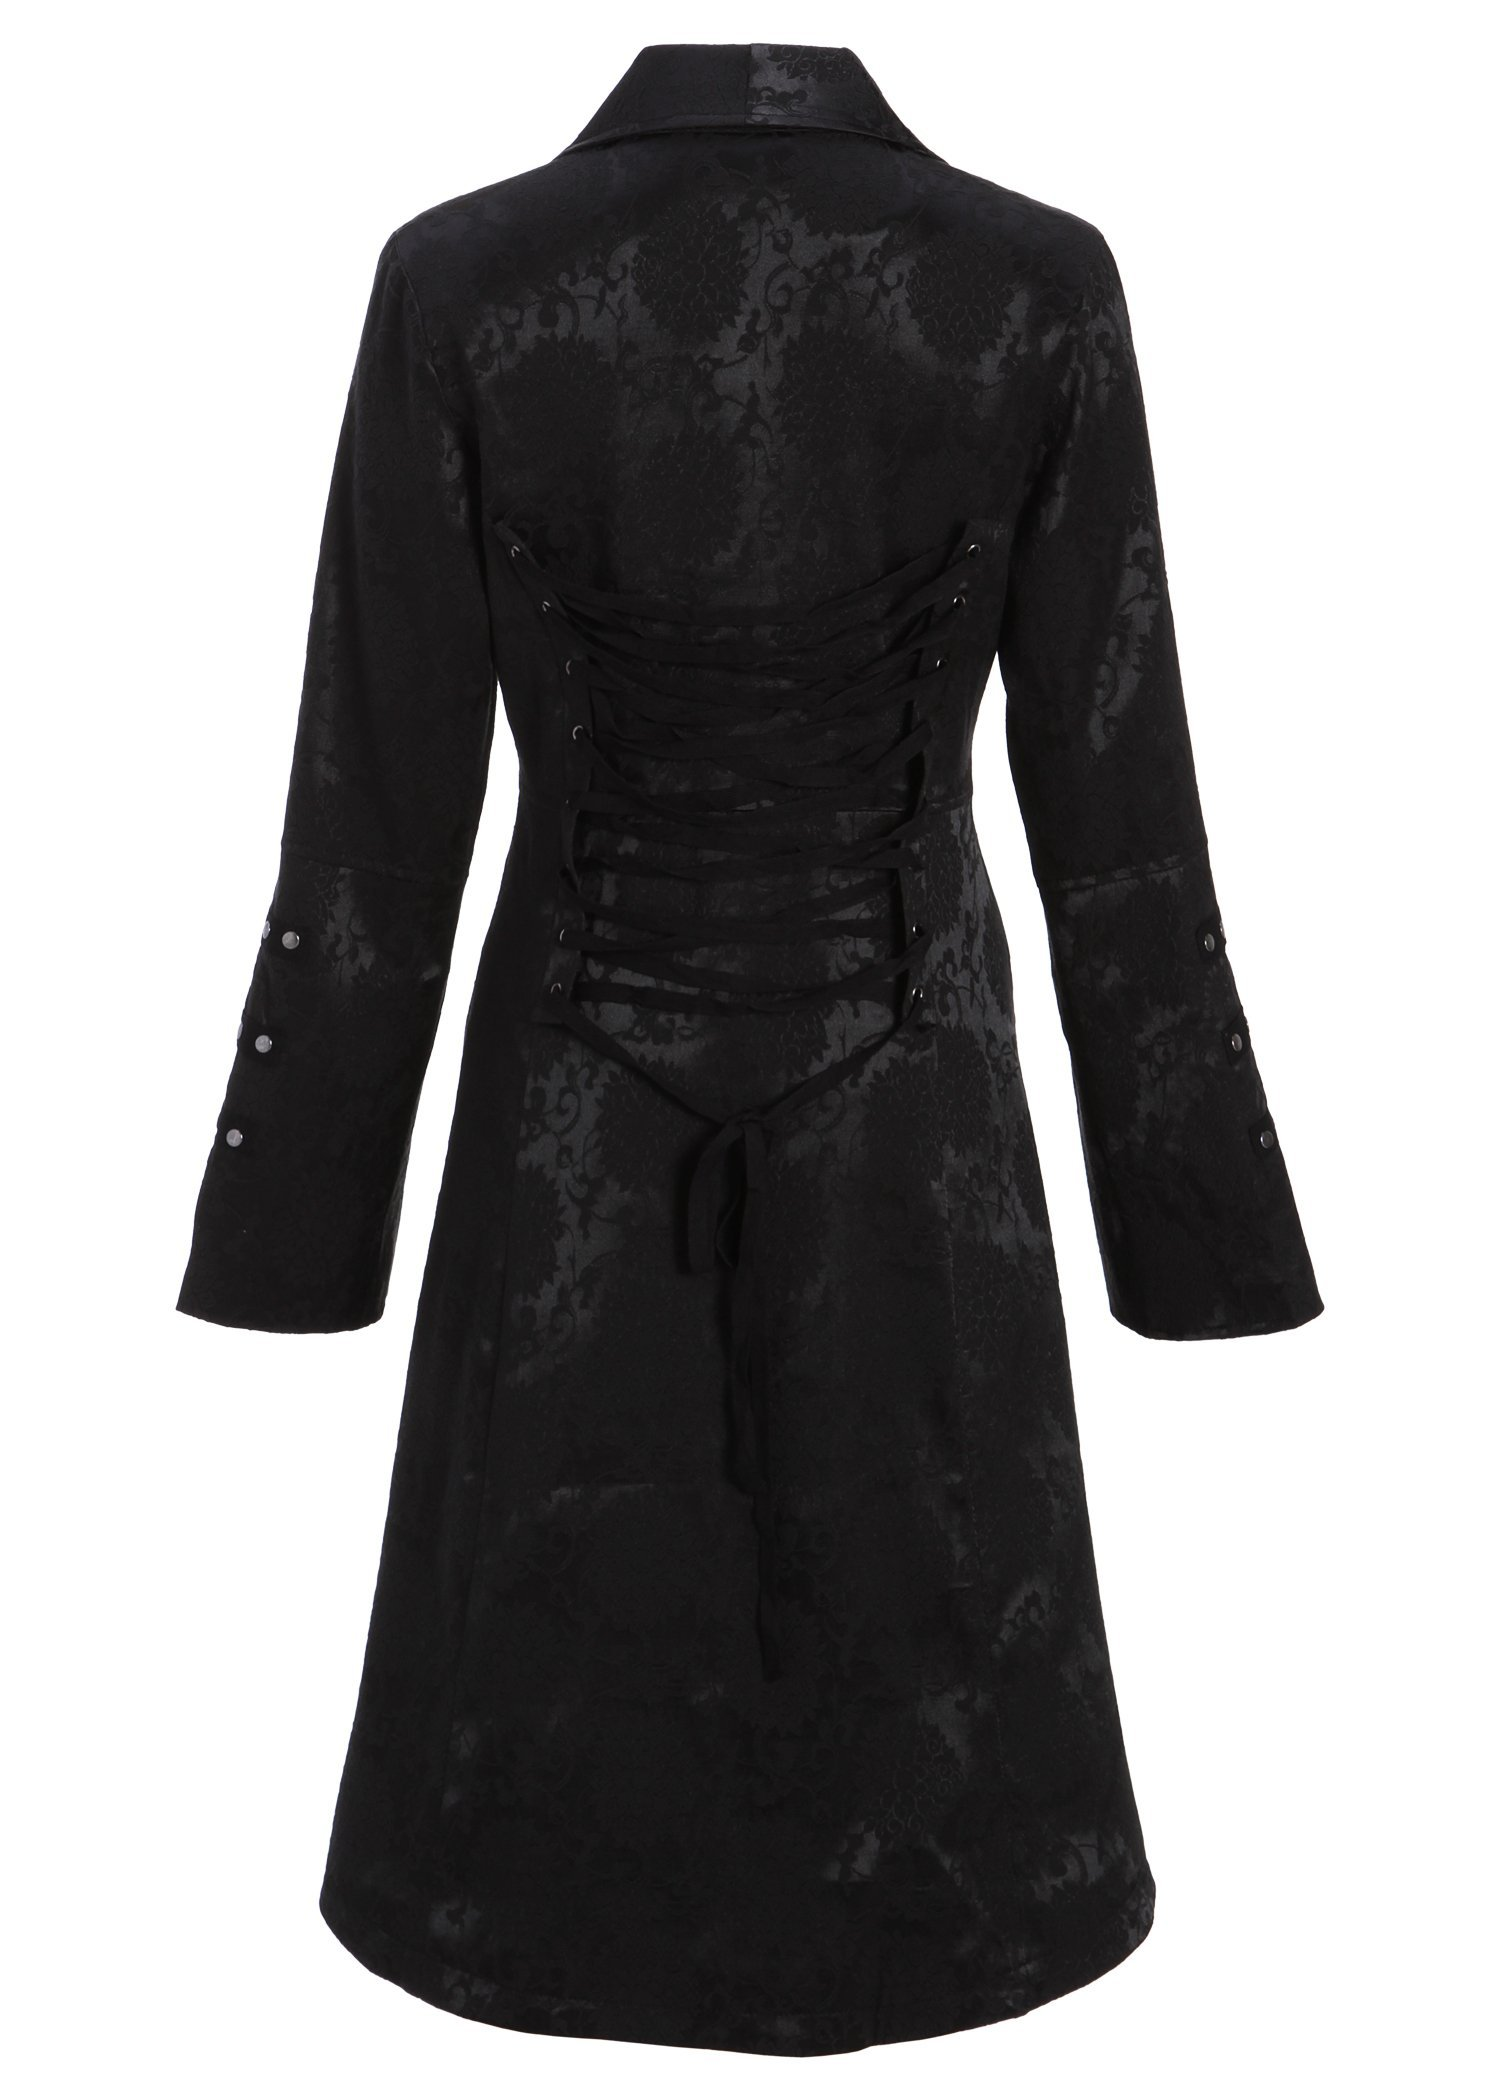 Womens Black Brocade Gothic Steampunk Floral Jacket Pirate Coat 4